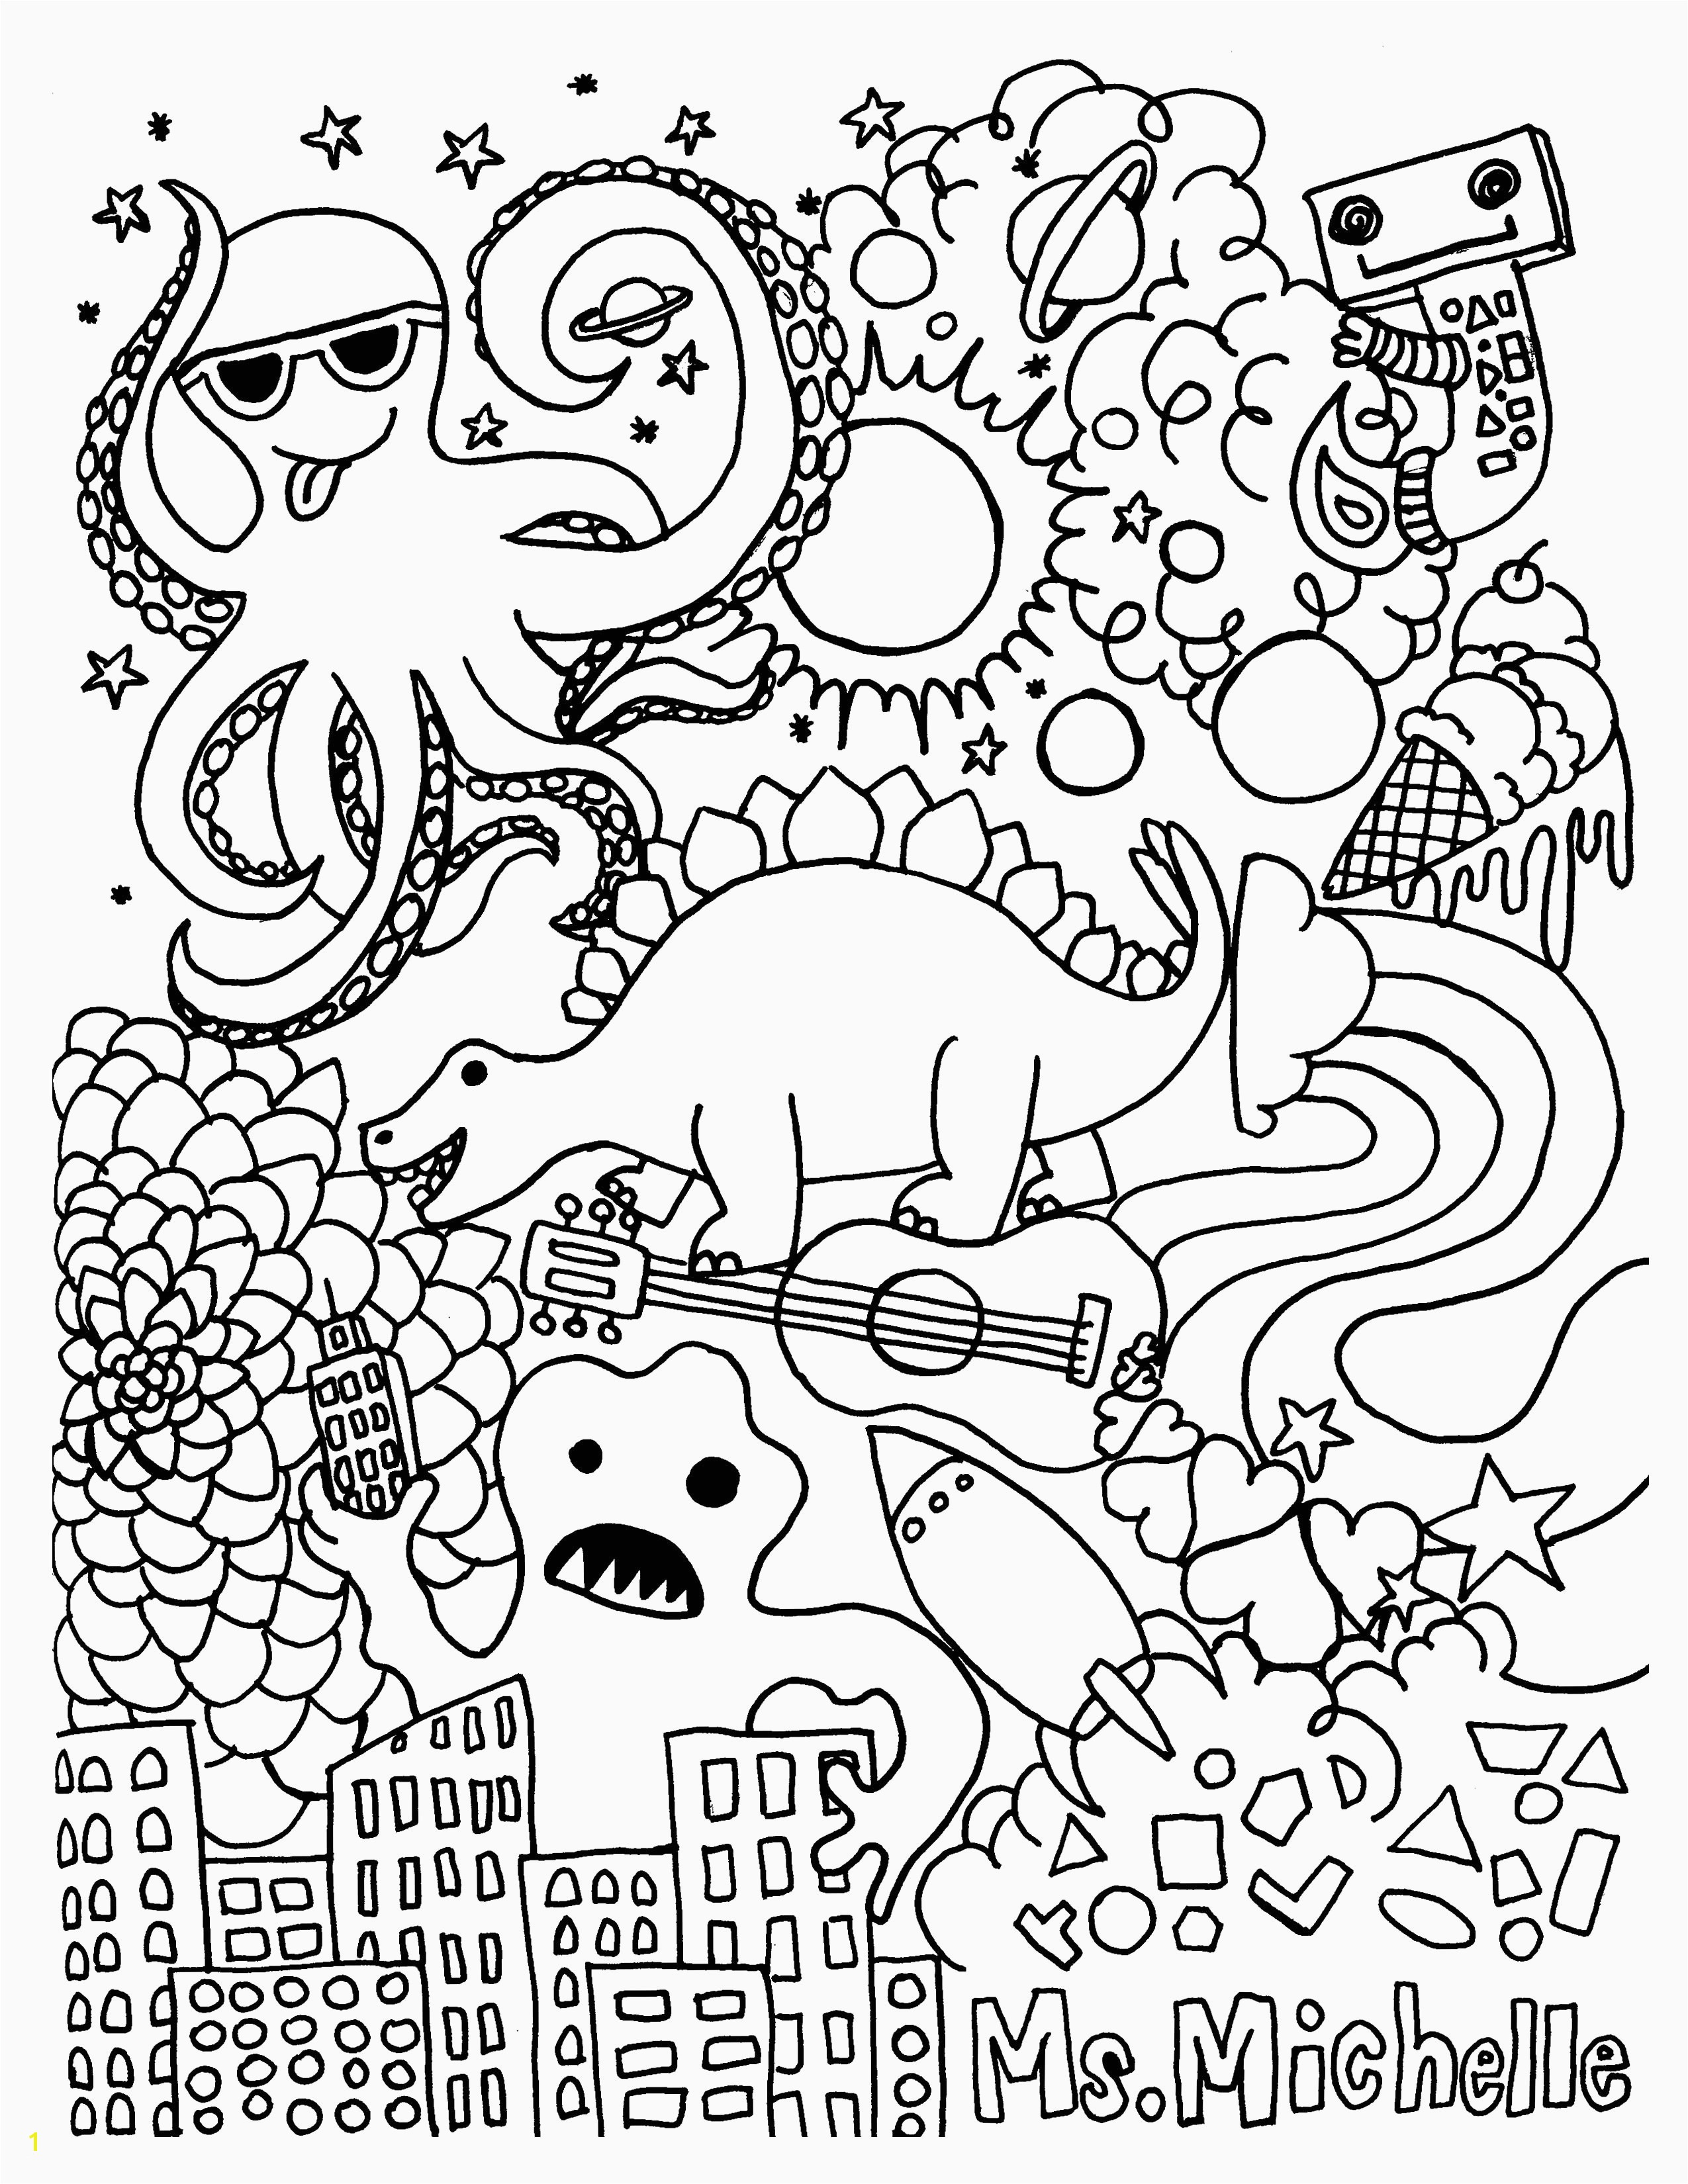 Printable Halloween Coloring Pages For Kids Halloween Printable Coloring Pages New Best Coloring Page Adult Od